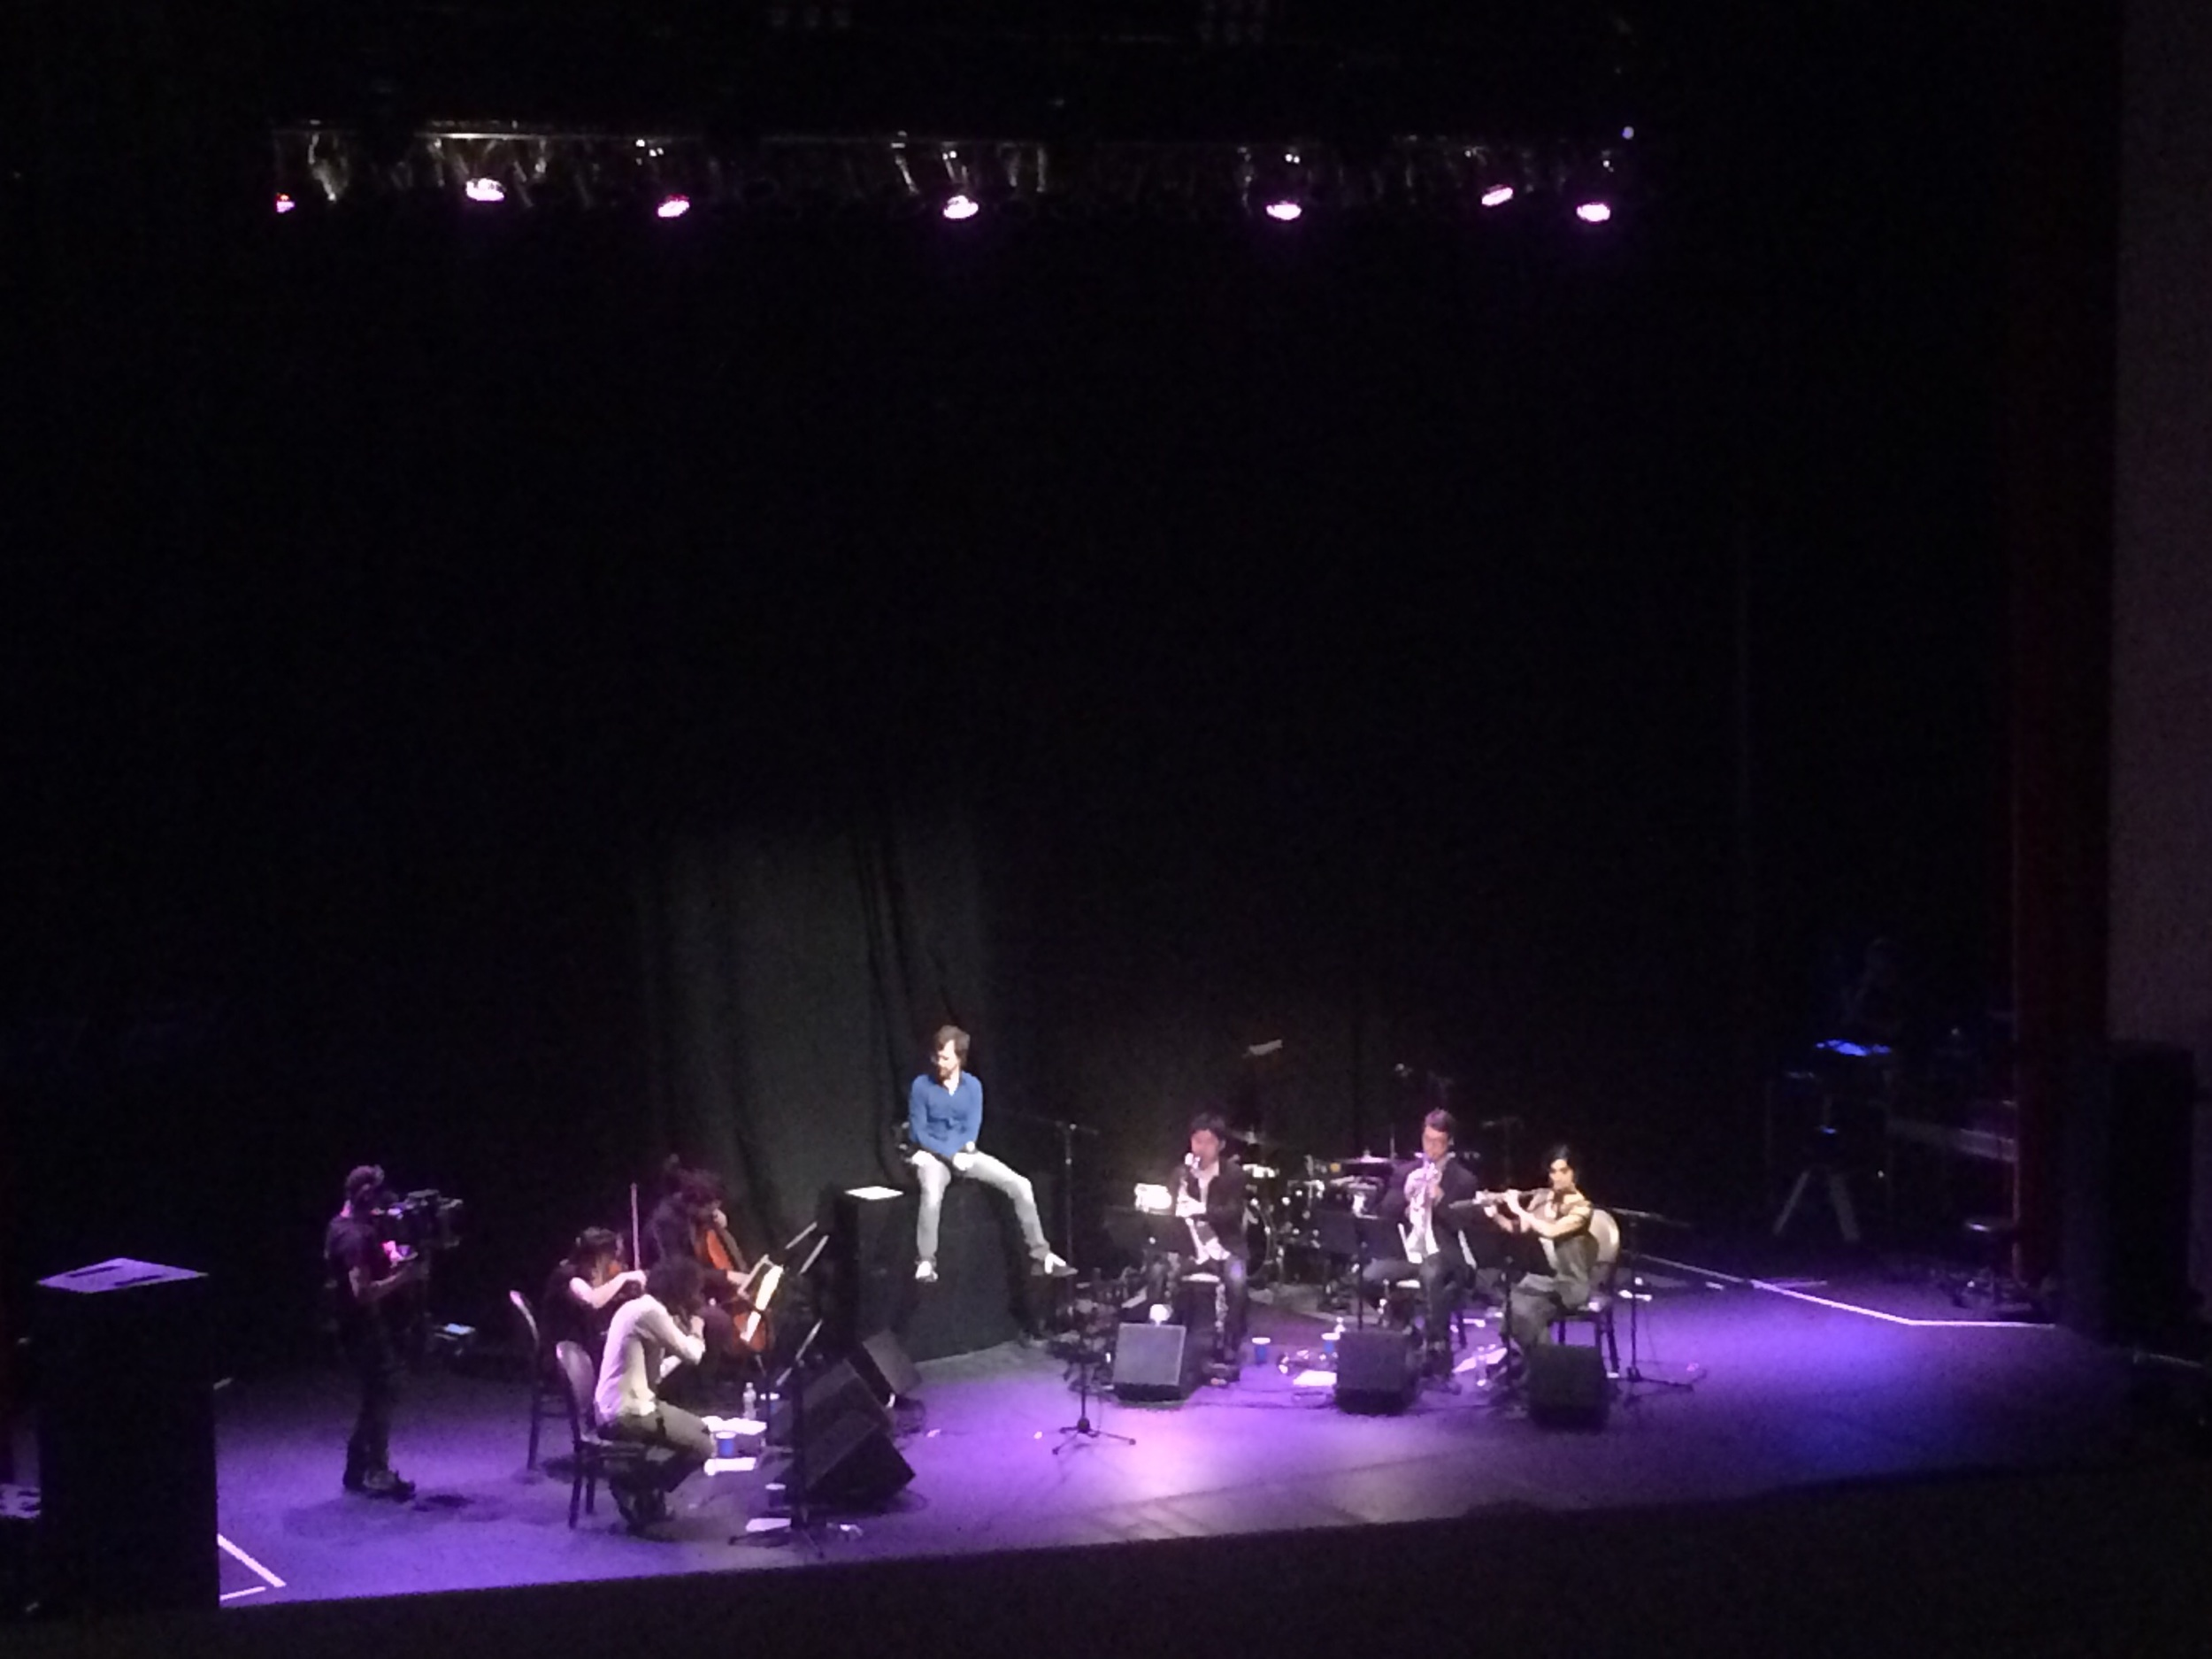 We saw Ben Folds on Monday and he was incredible, and absolute joy to watch.